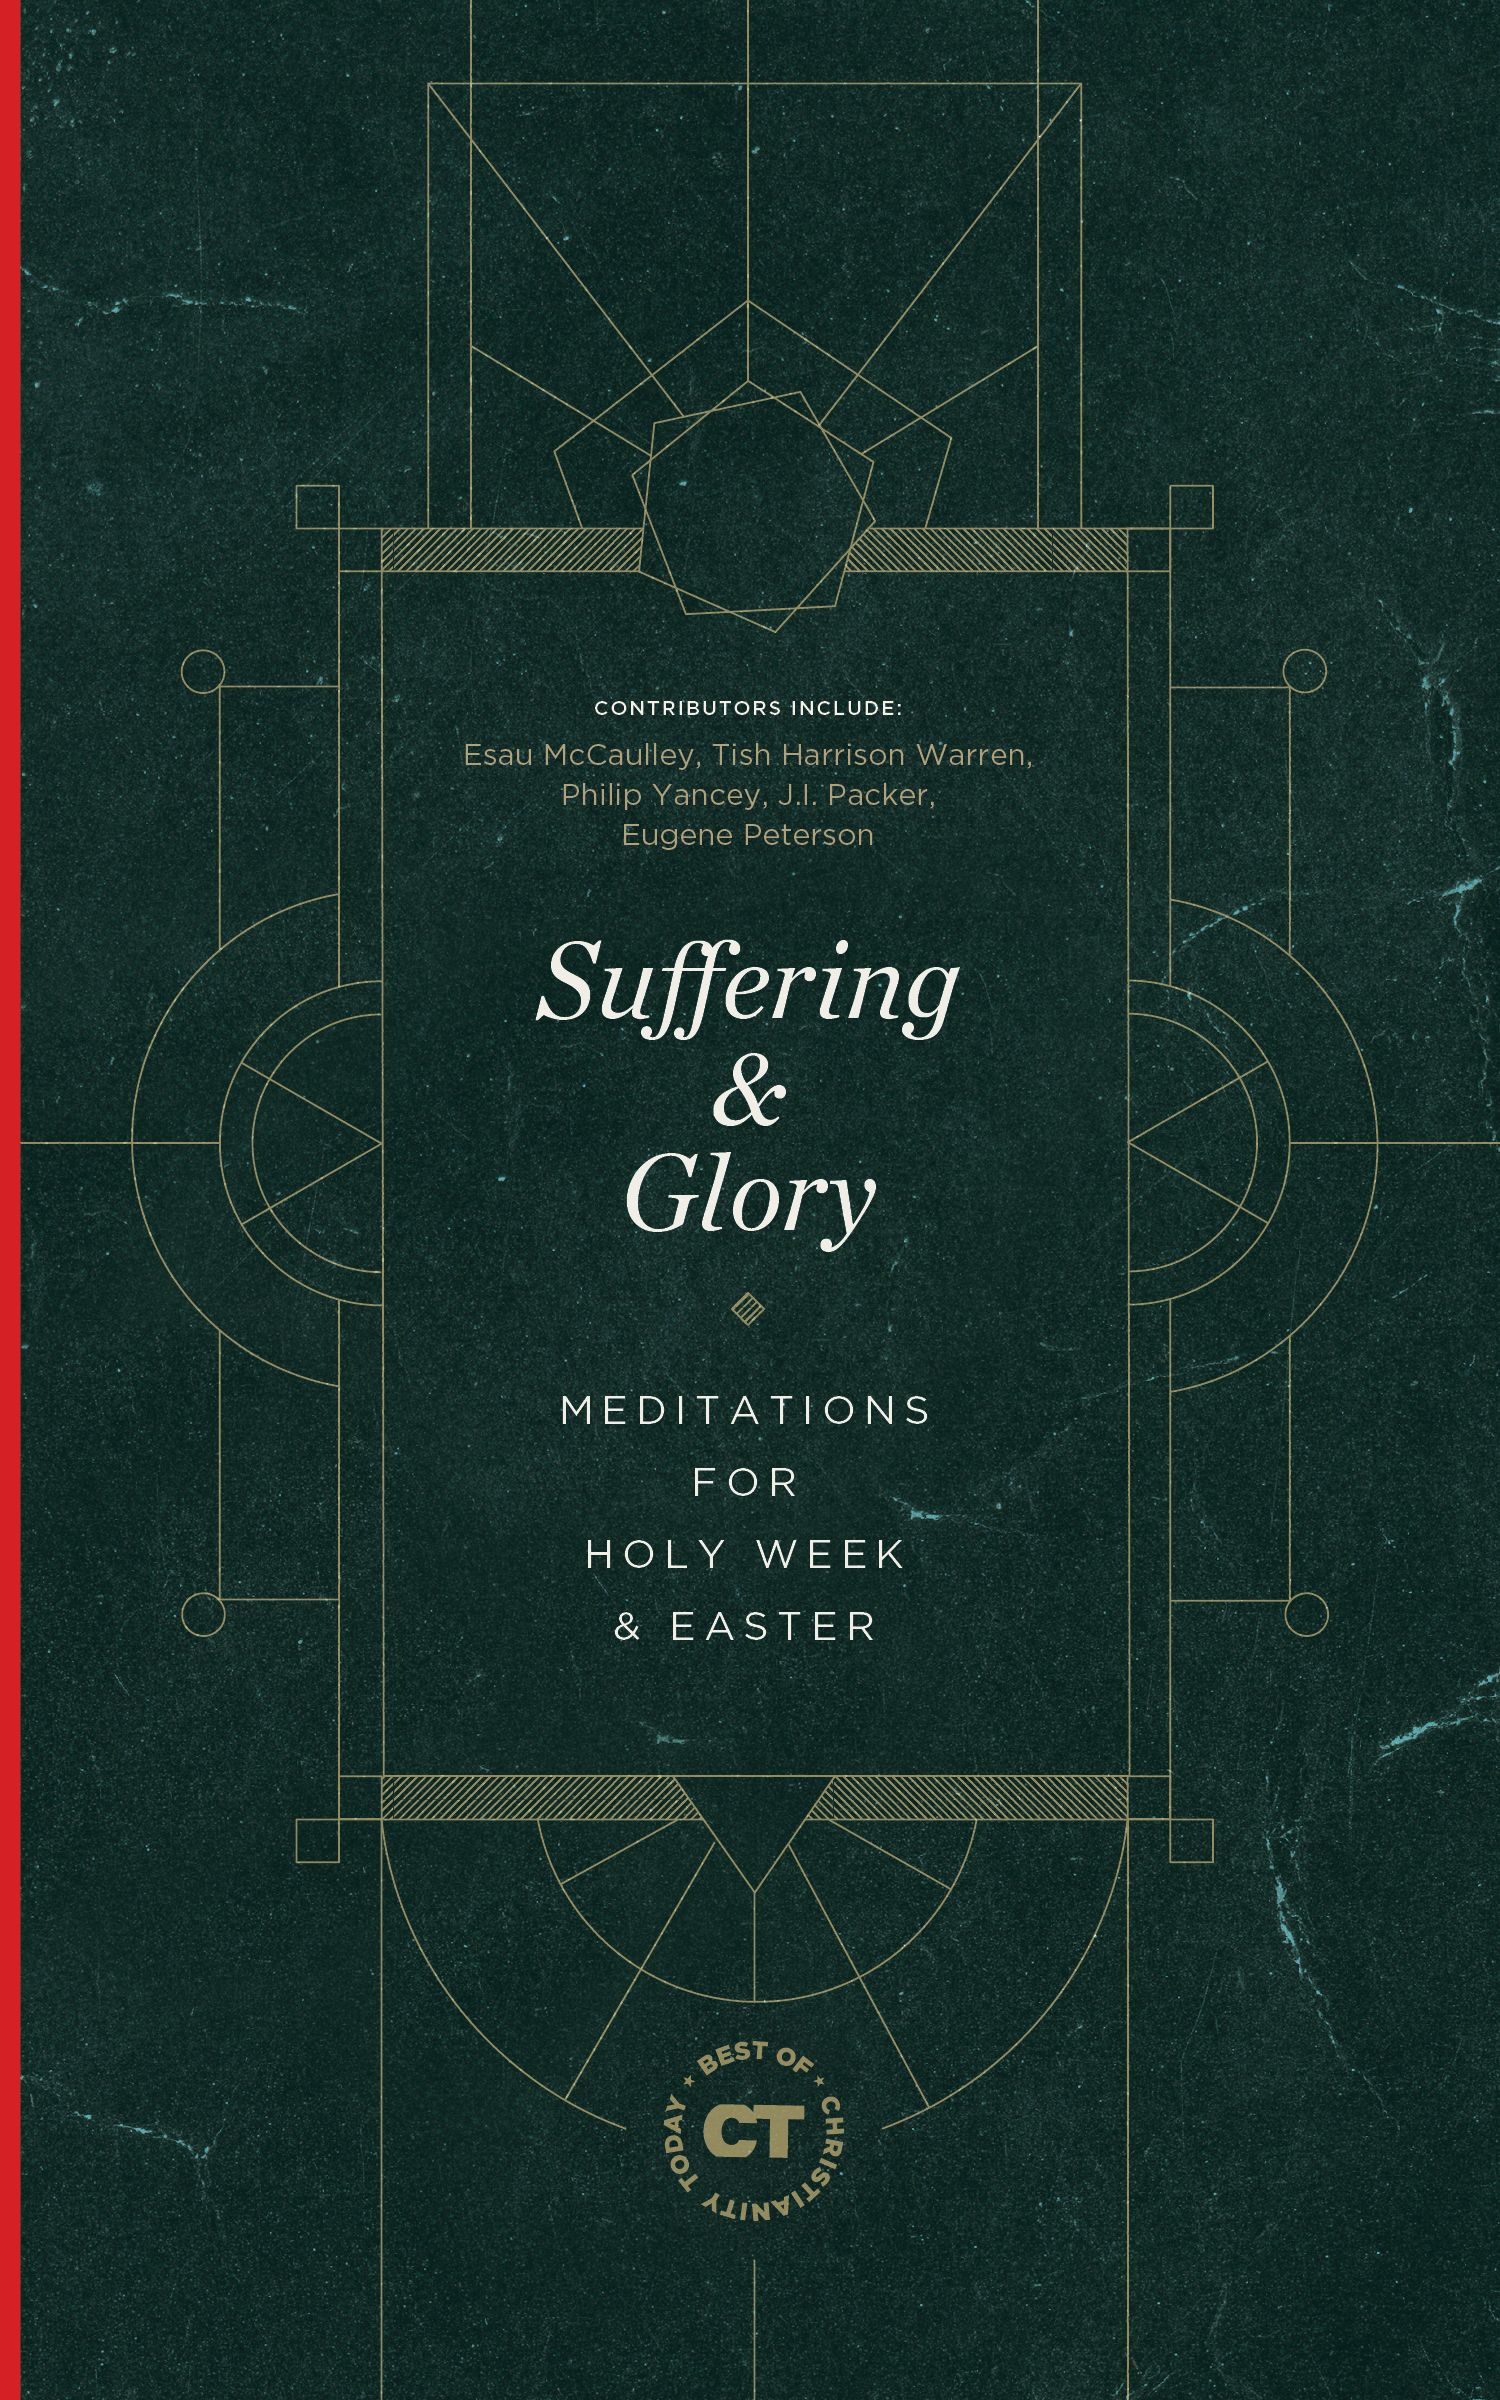 Suffering & Glory: Meditations for Holy Week and Easter